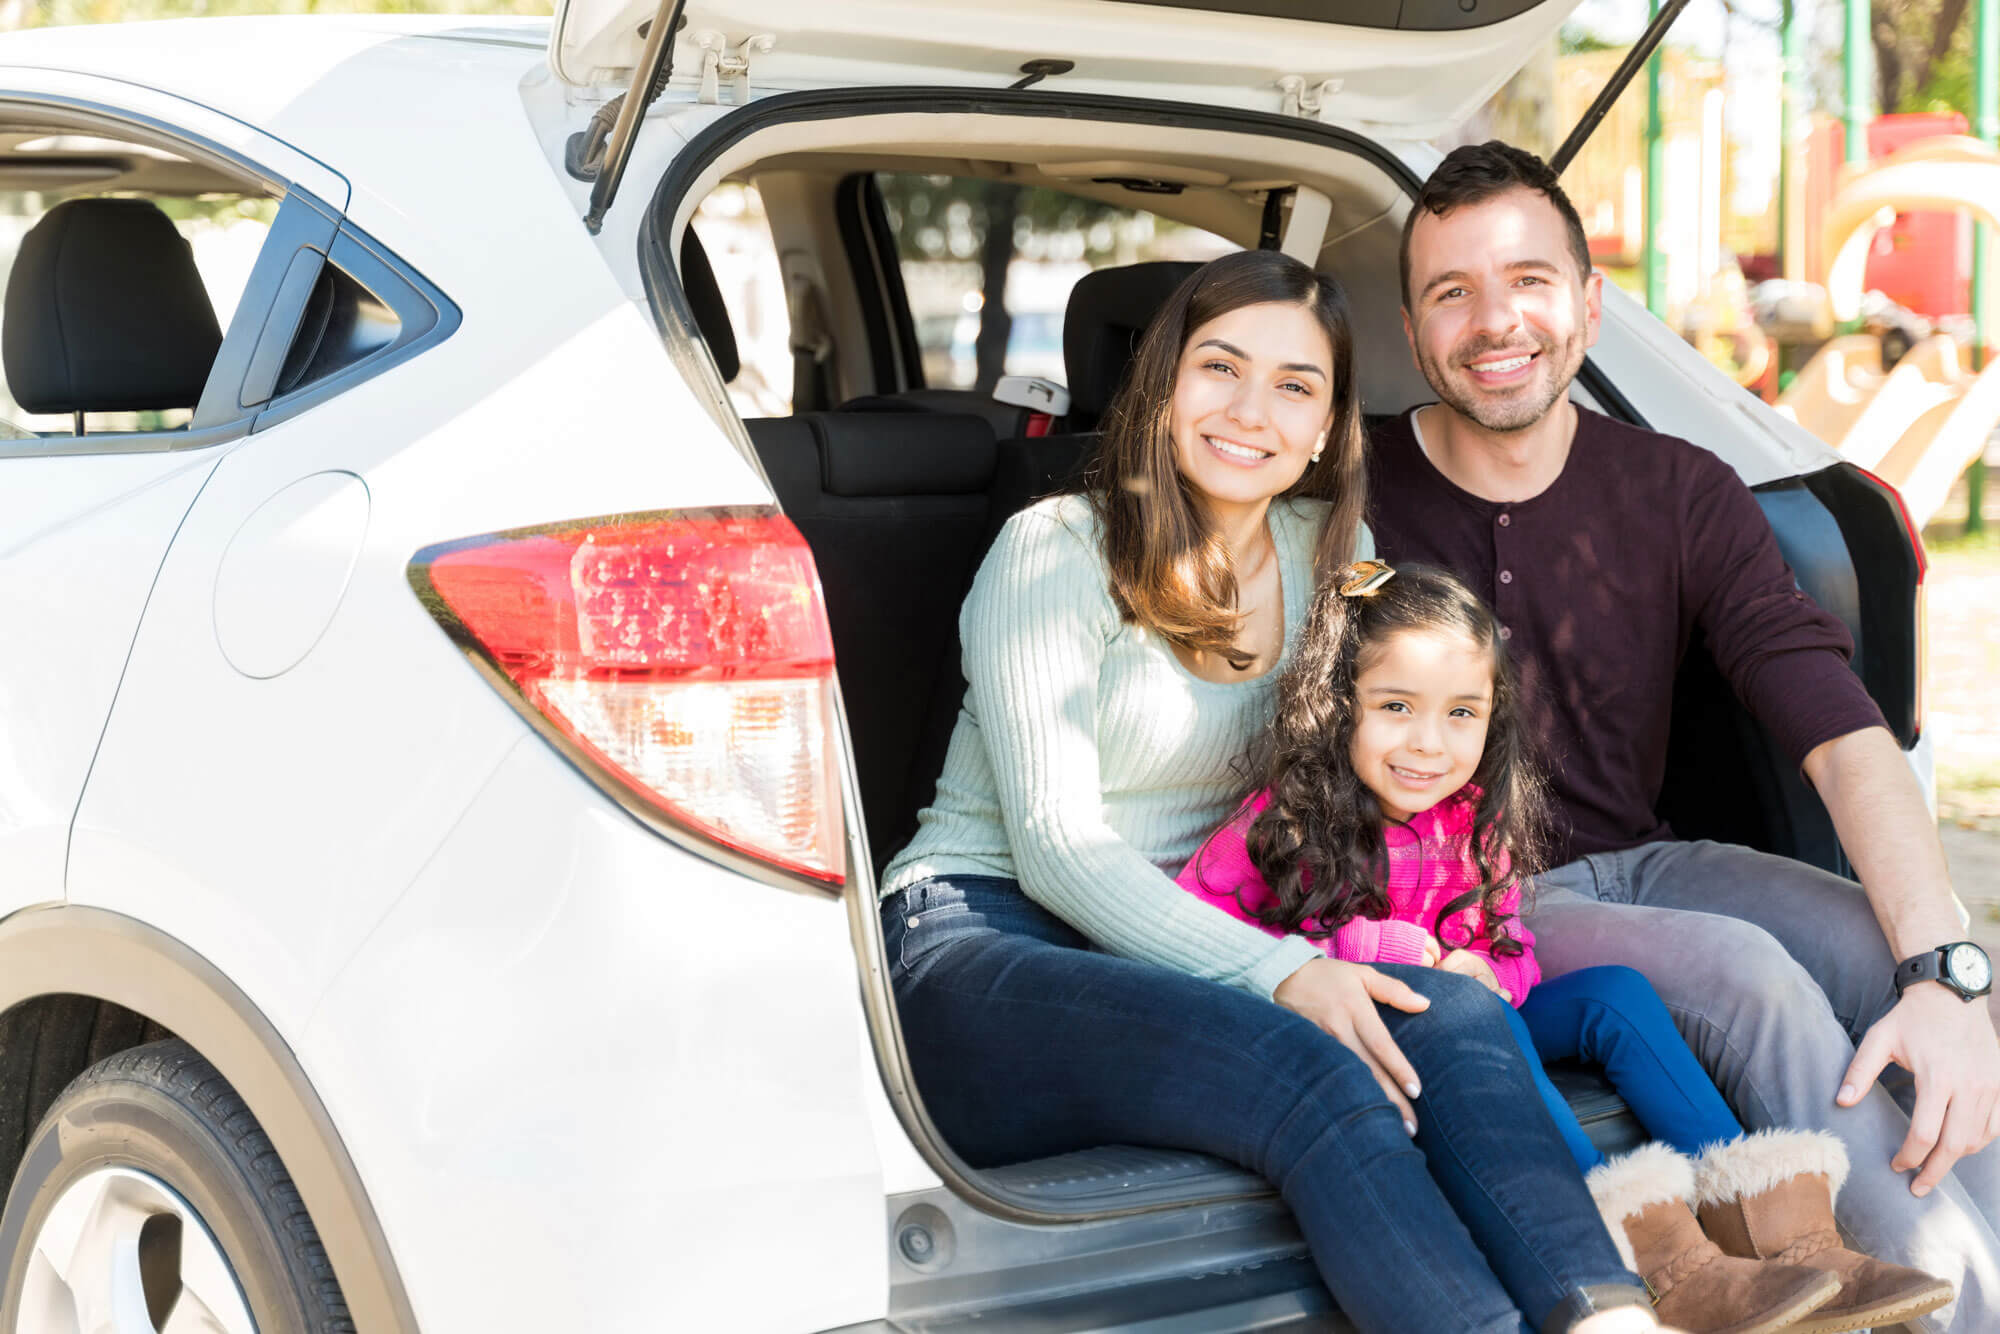 A smiling family sat in the boot of a car